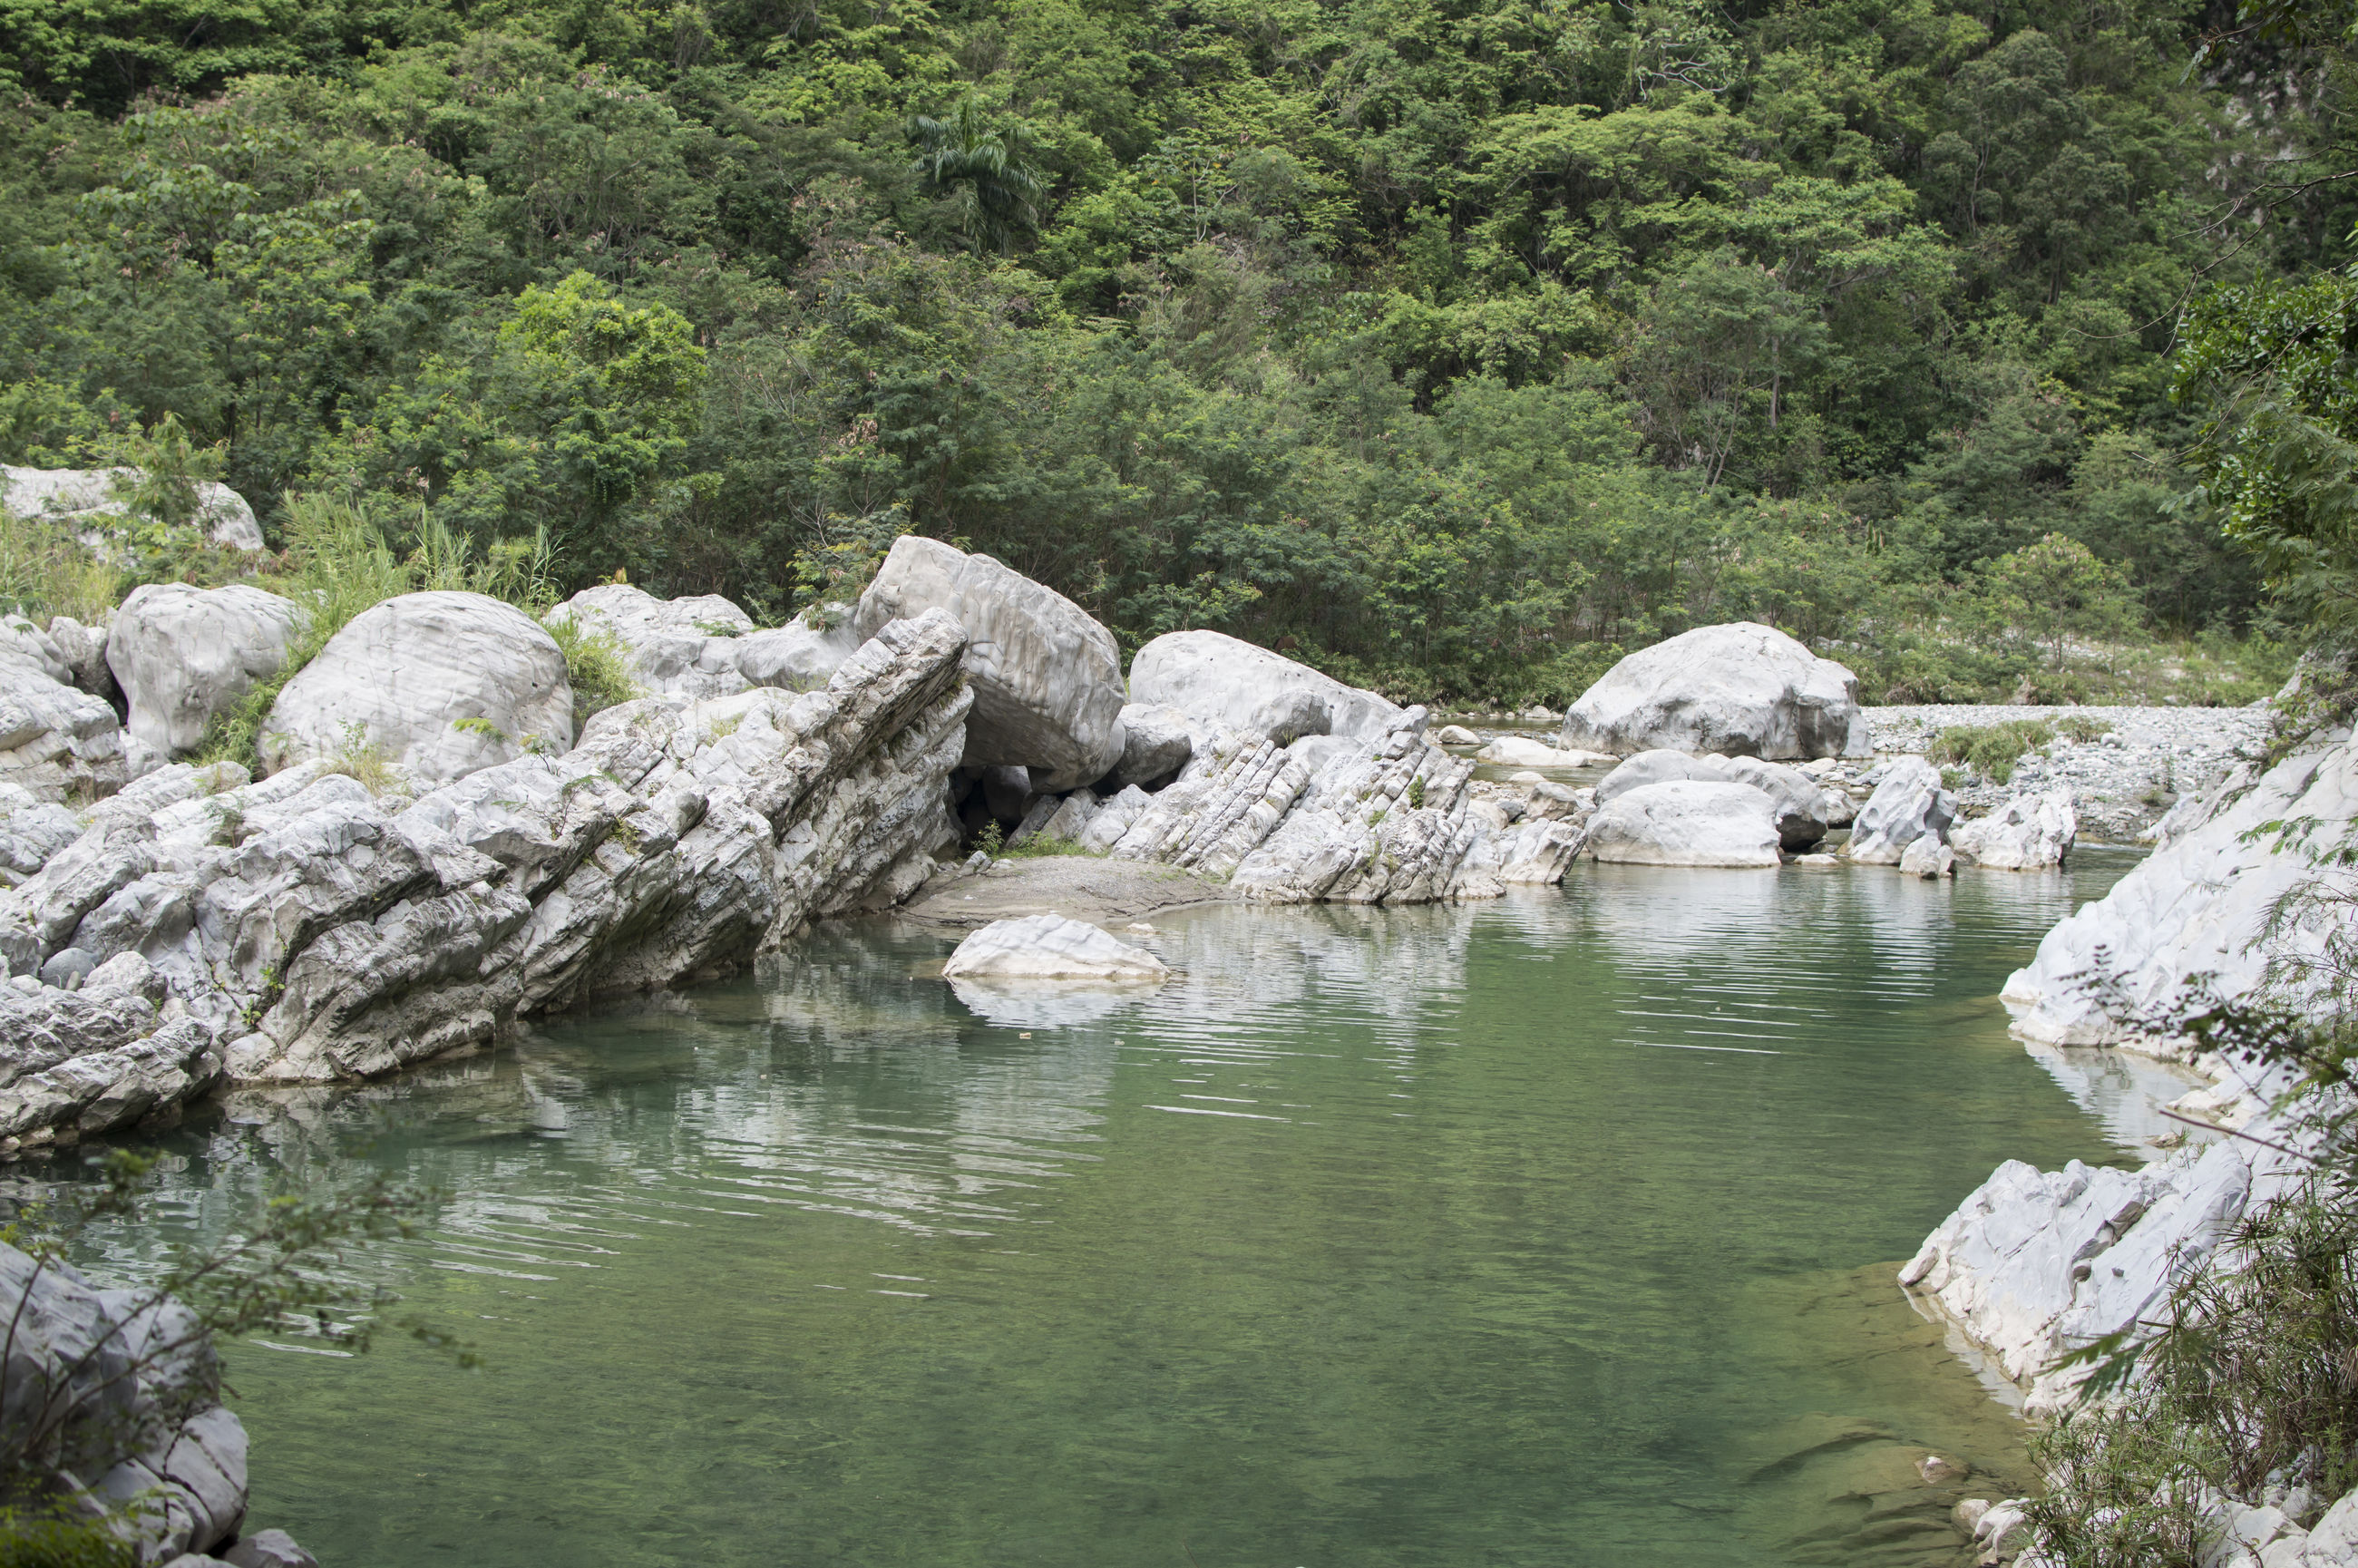 nature, rock - object, tree, water, outdoors, tranquil scene, no people, day, river, scenics, tranquility, beauty in nature, forest, sky